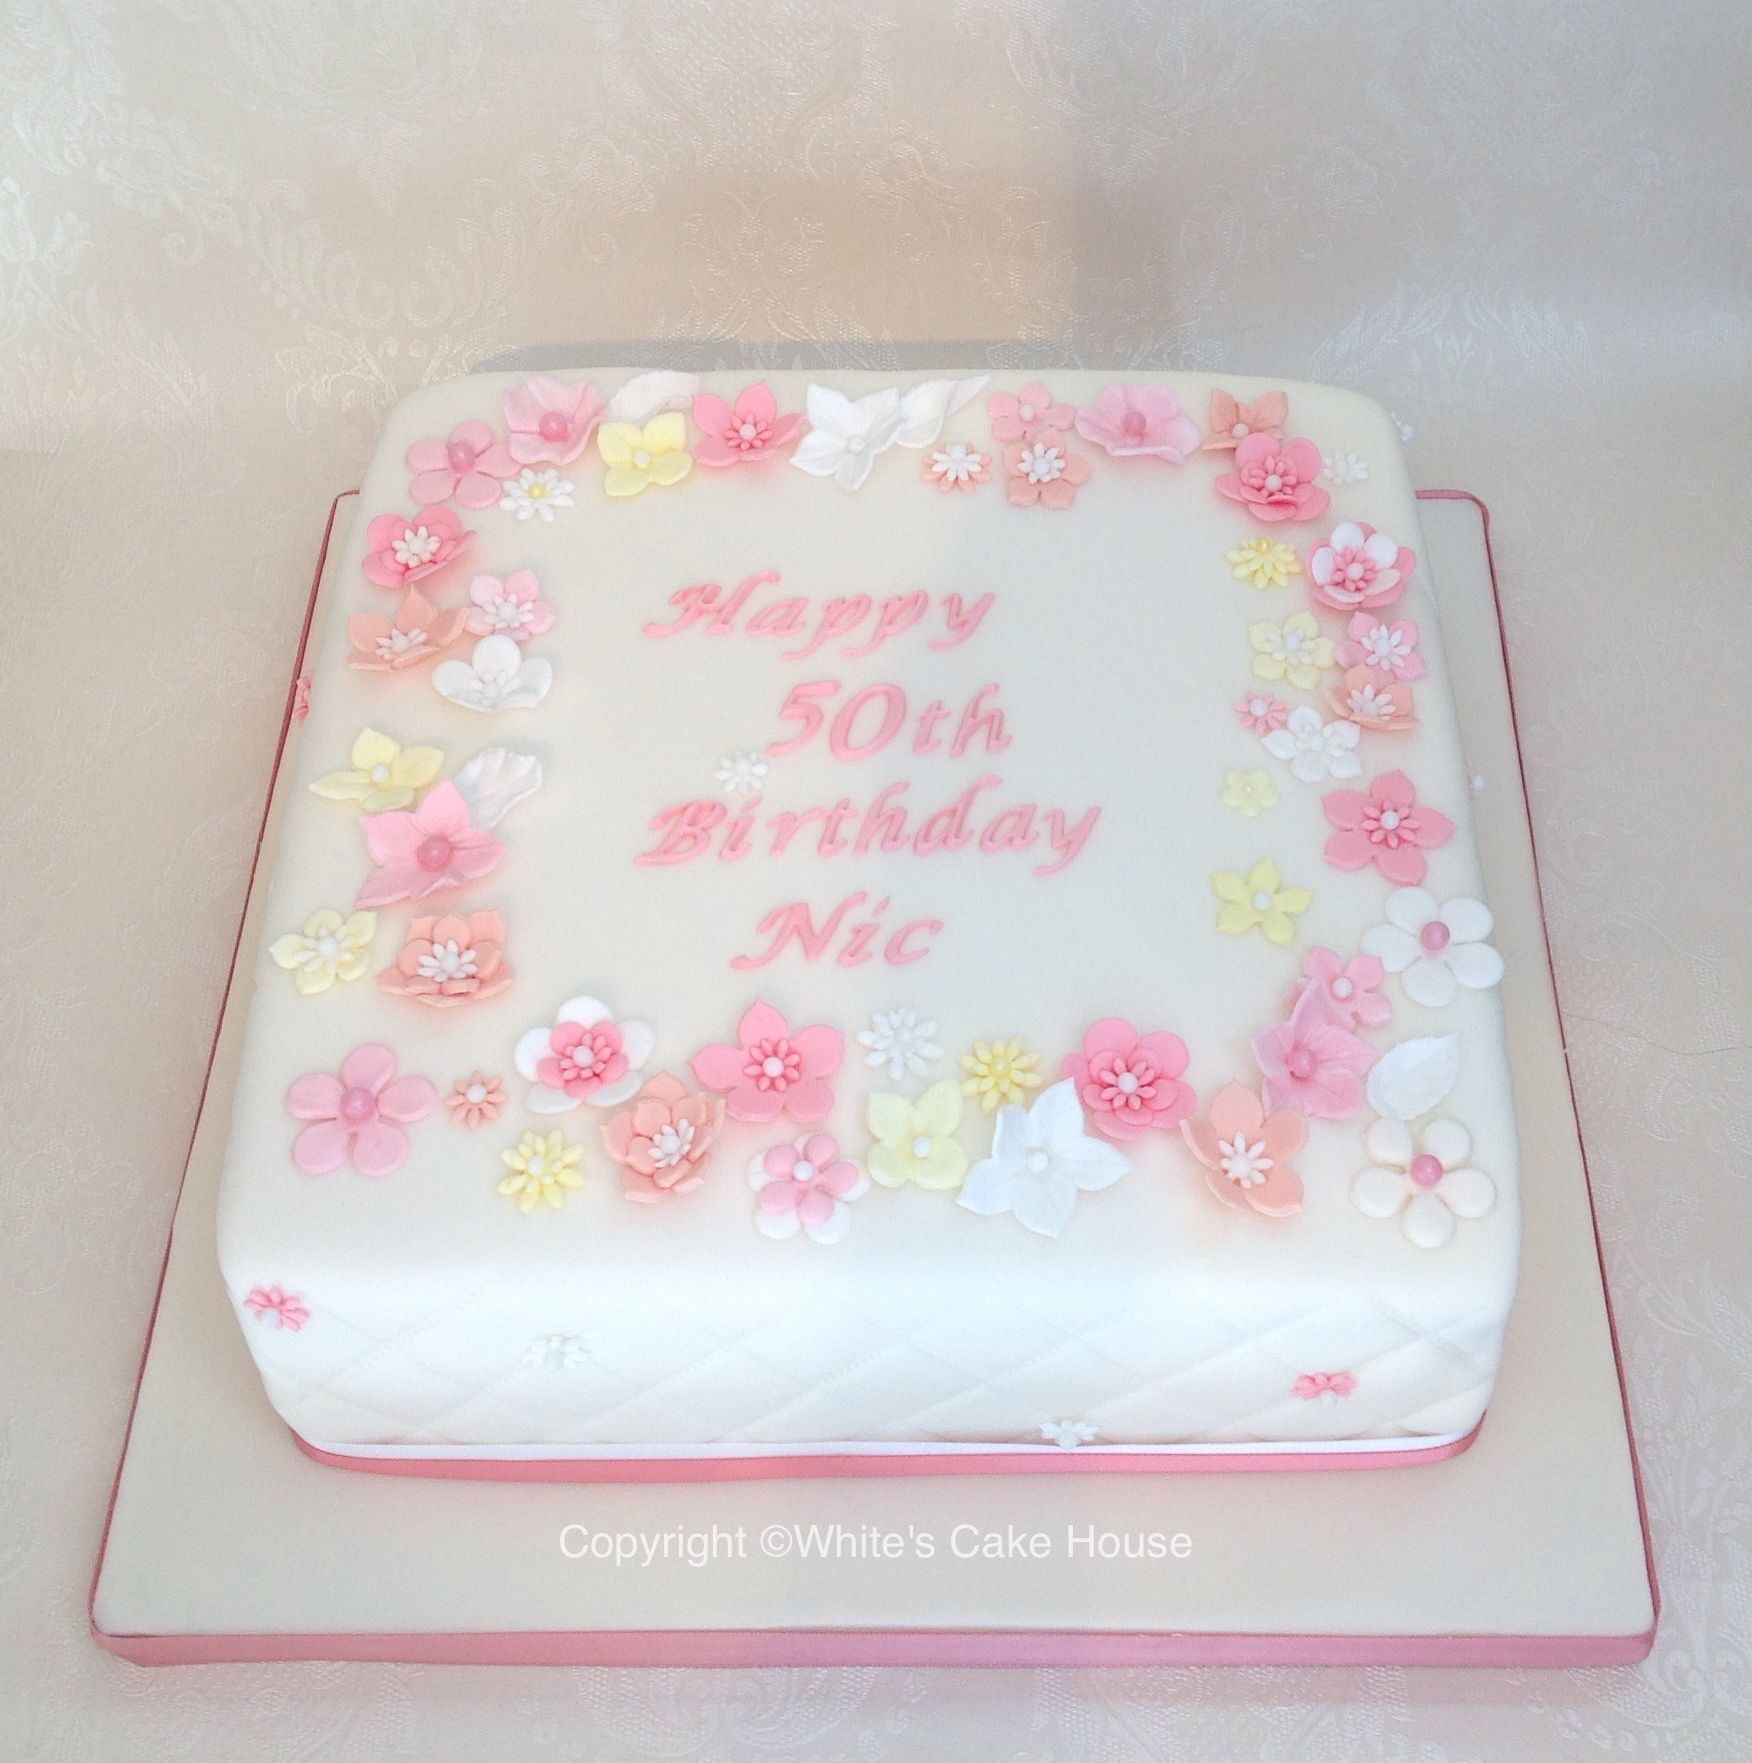 Flower covered birthday cake